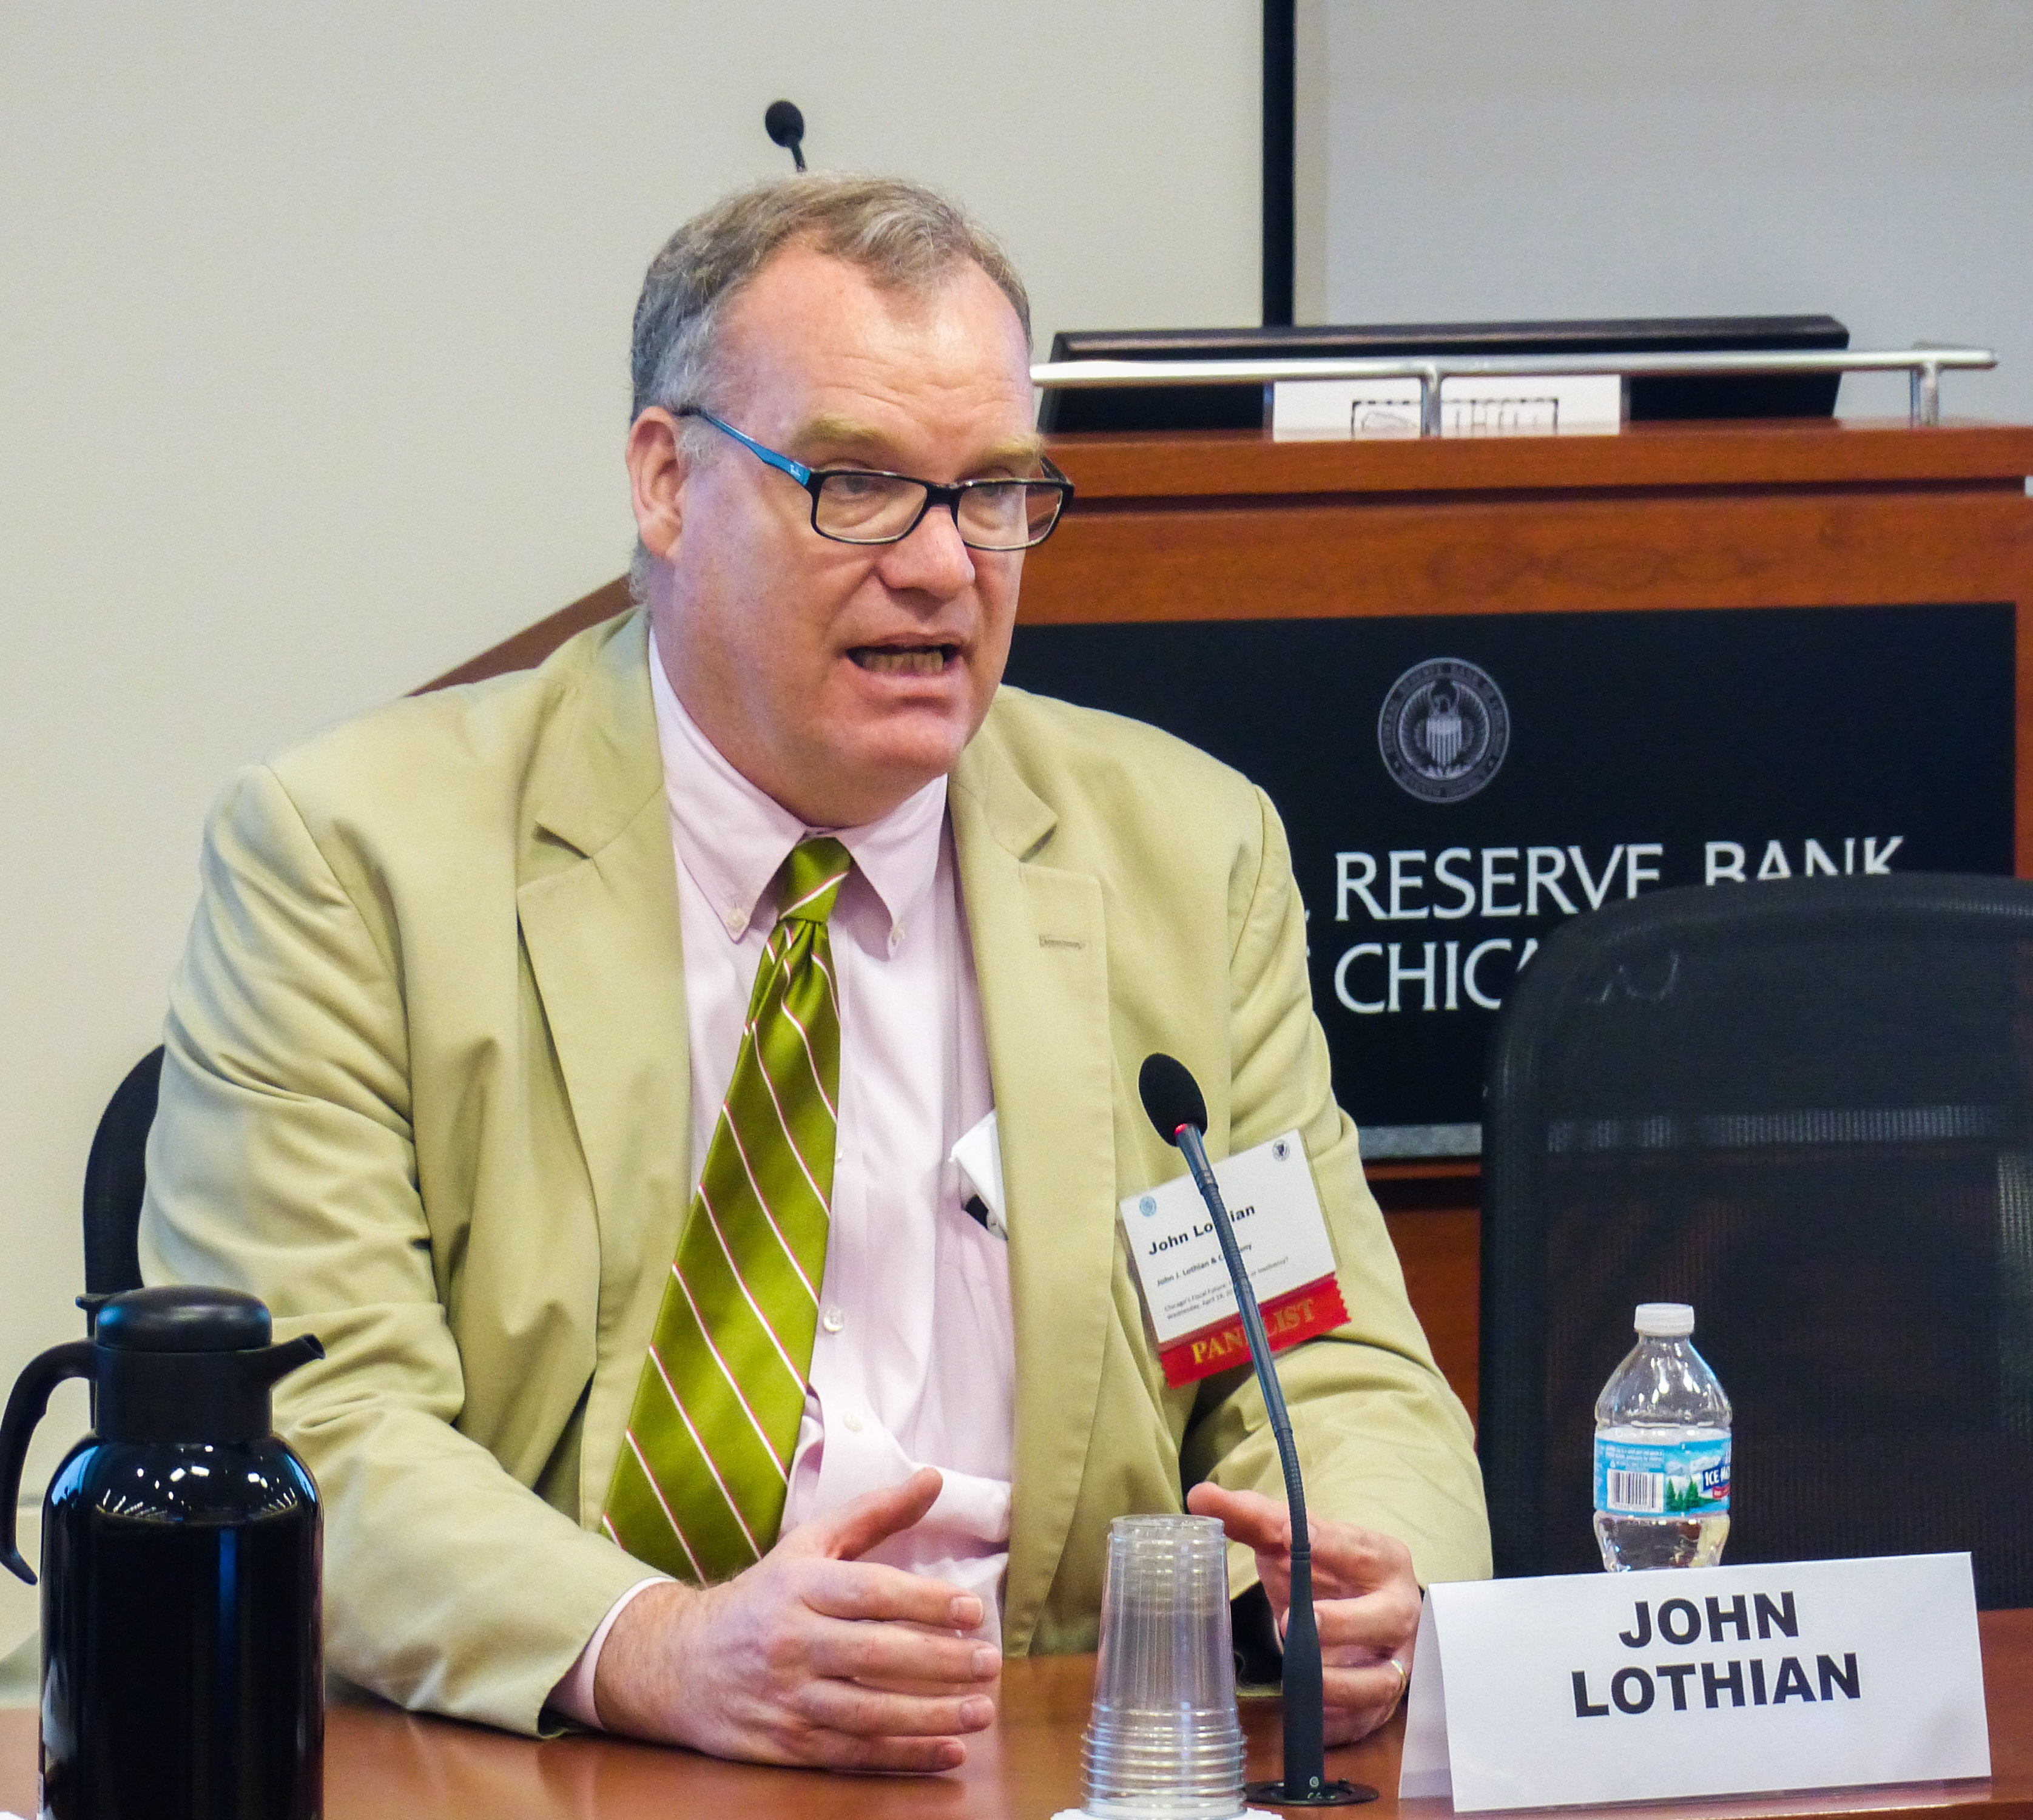 John Lothian, Federal Reserve Bank of Chicago, Civic Federation